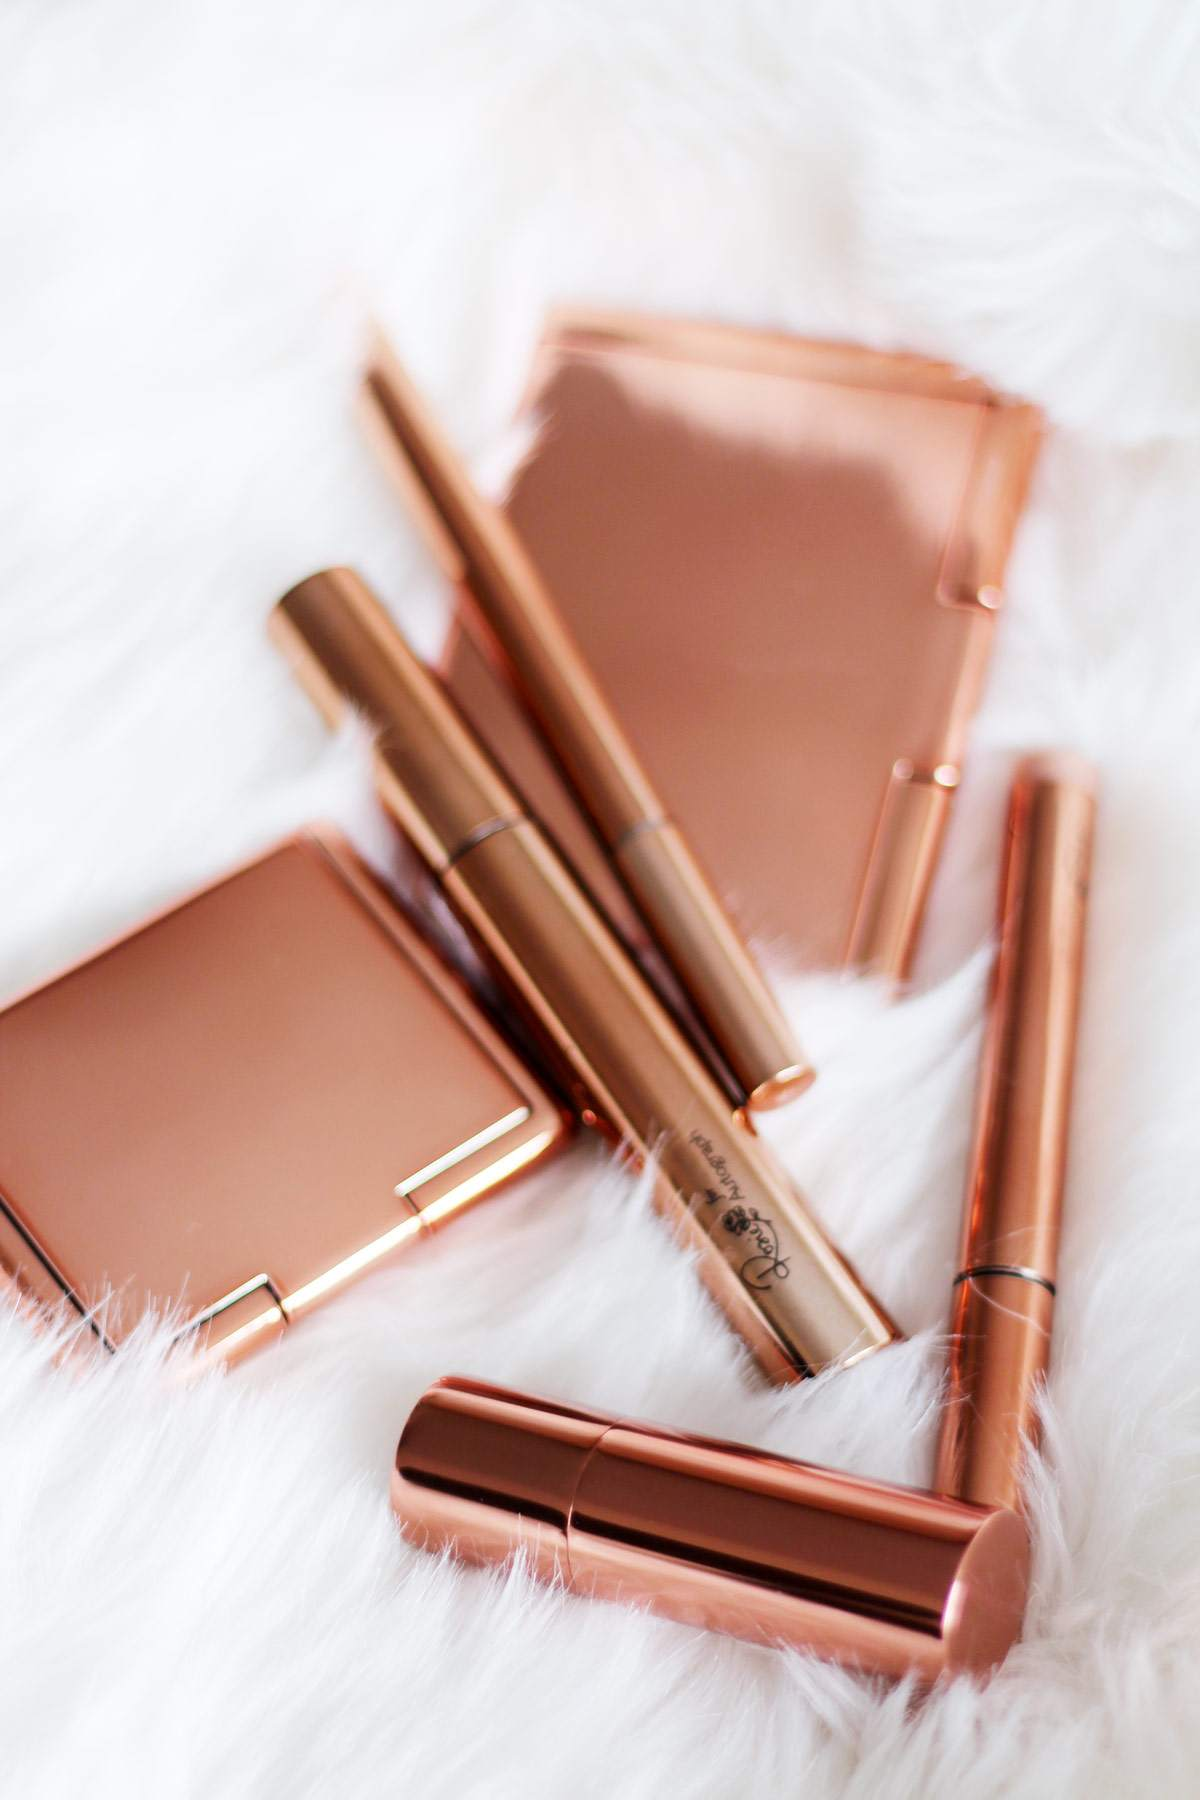 rosie-hungtington-whitley-RHW-for-autograph-marks-and-spencers-makeup-range-rose-gold